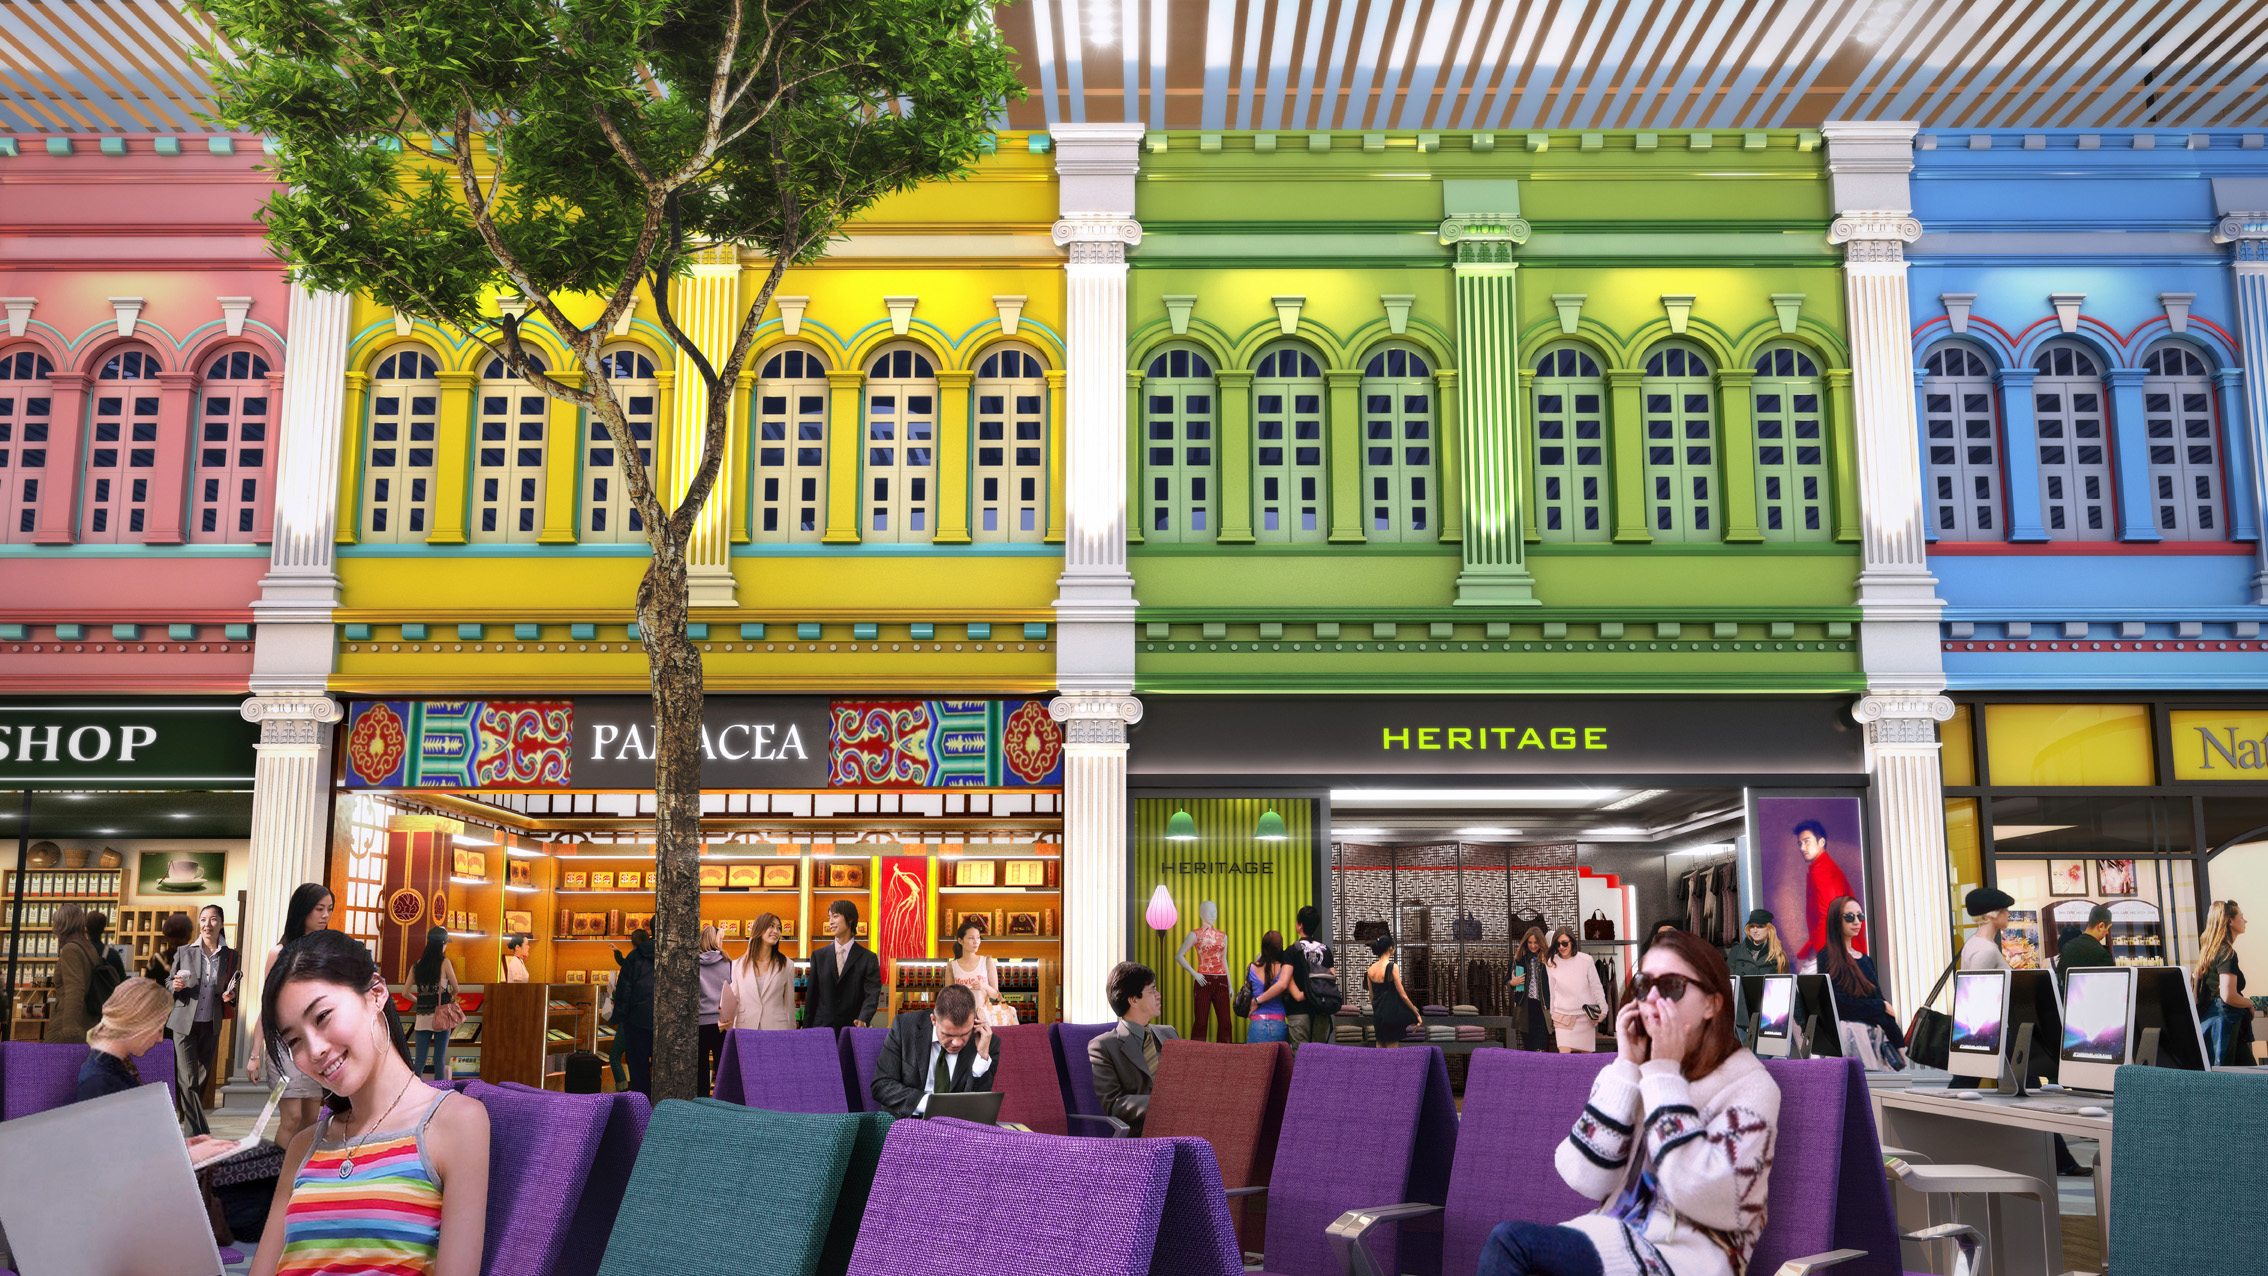 Singapore's heritage is showcased in retail stores featuring facades of old Peranakan houses. Photo courtesy: Changi Airport Group